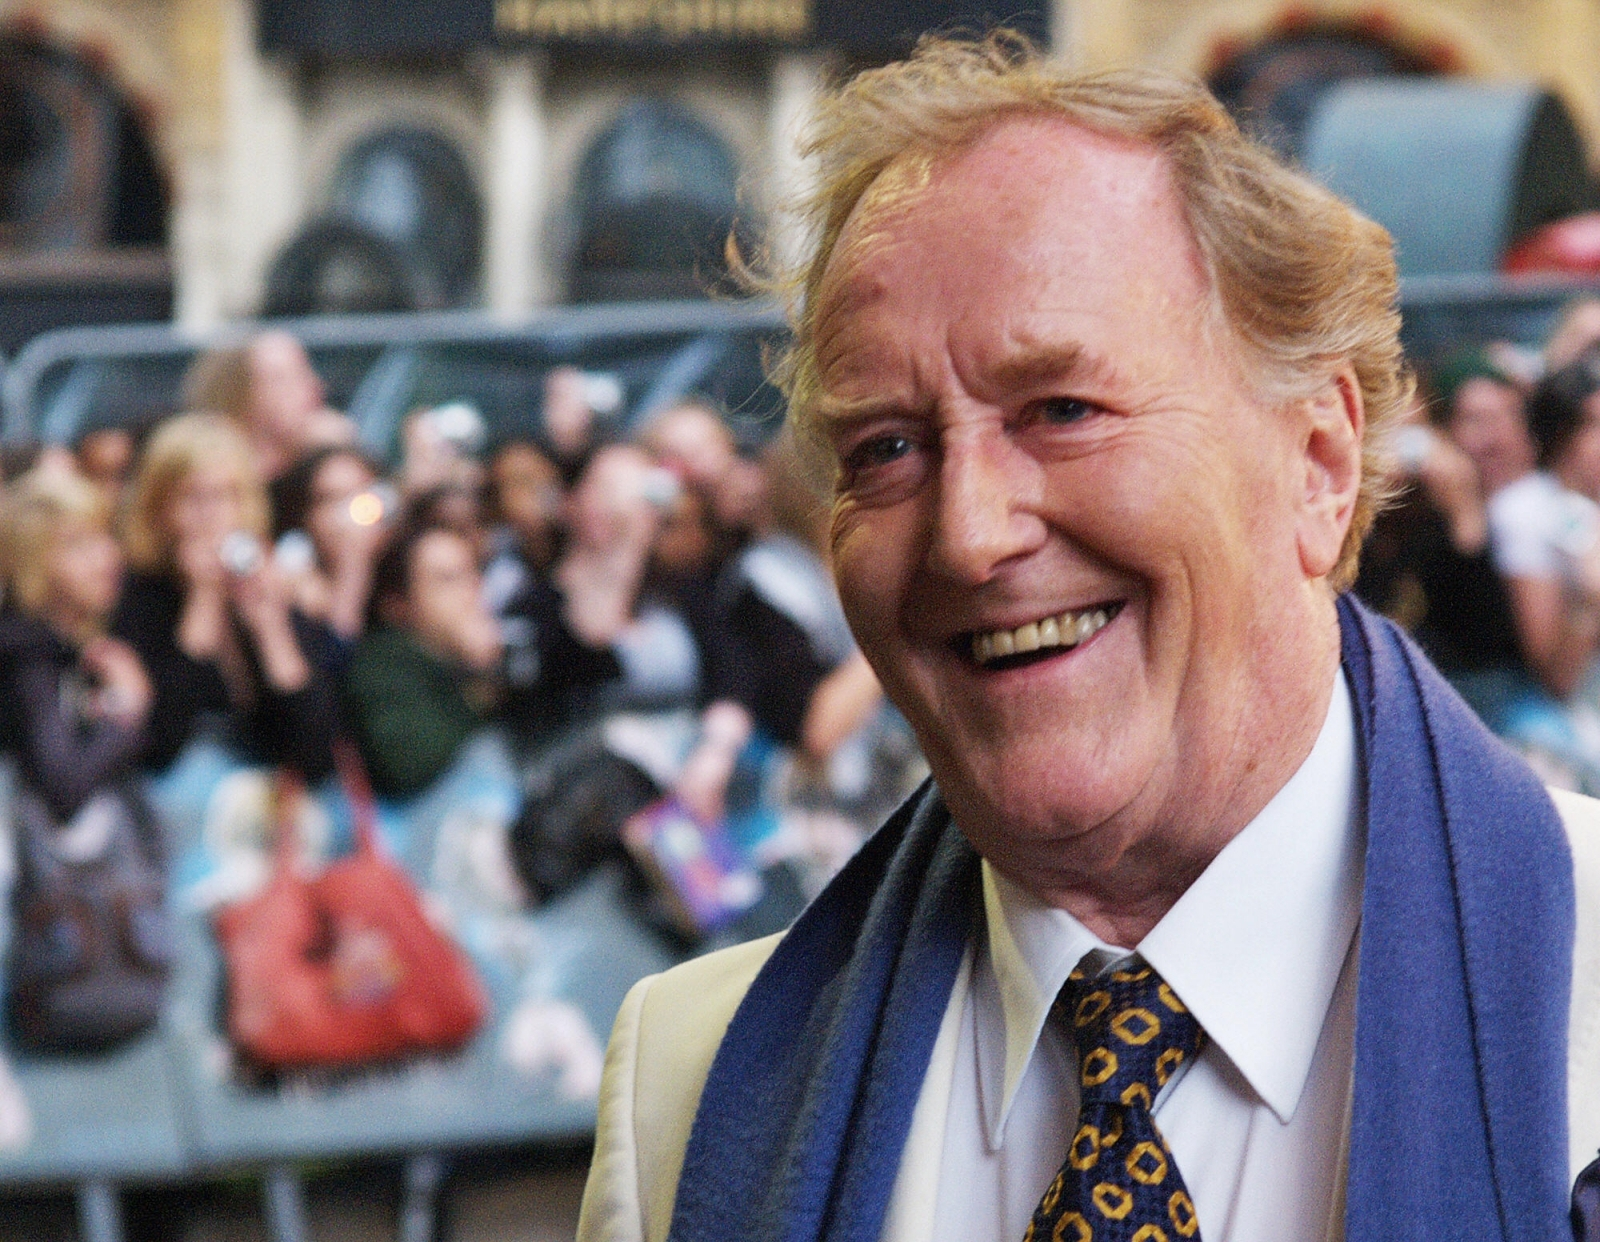 The actor who played Cornelius Fudge in Harry Potter has died